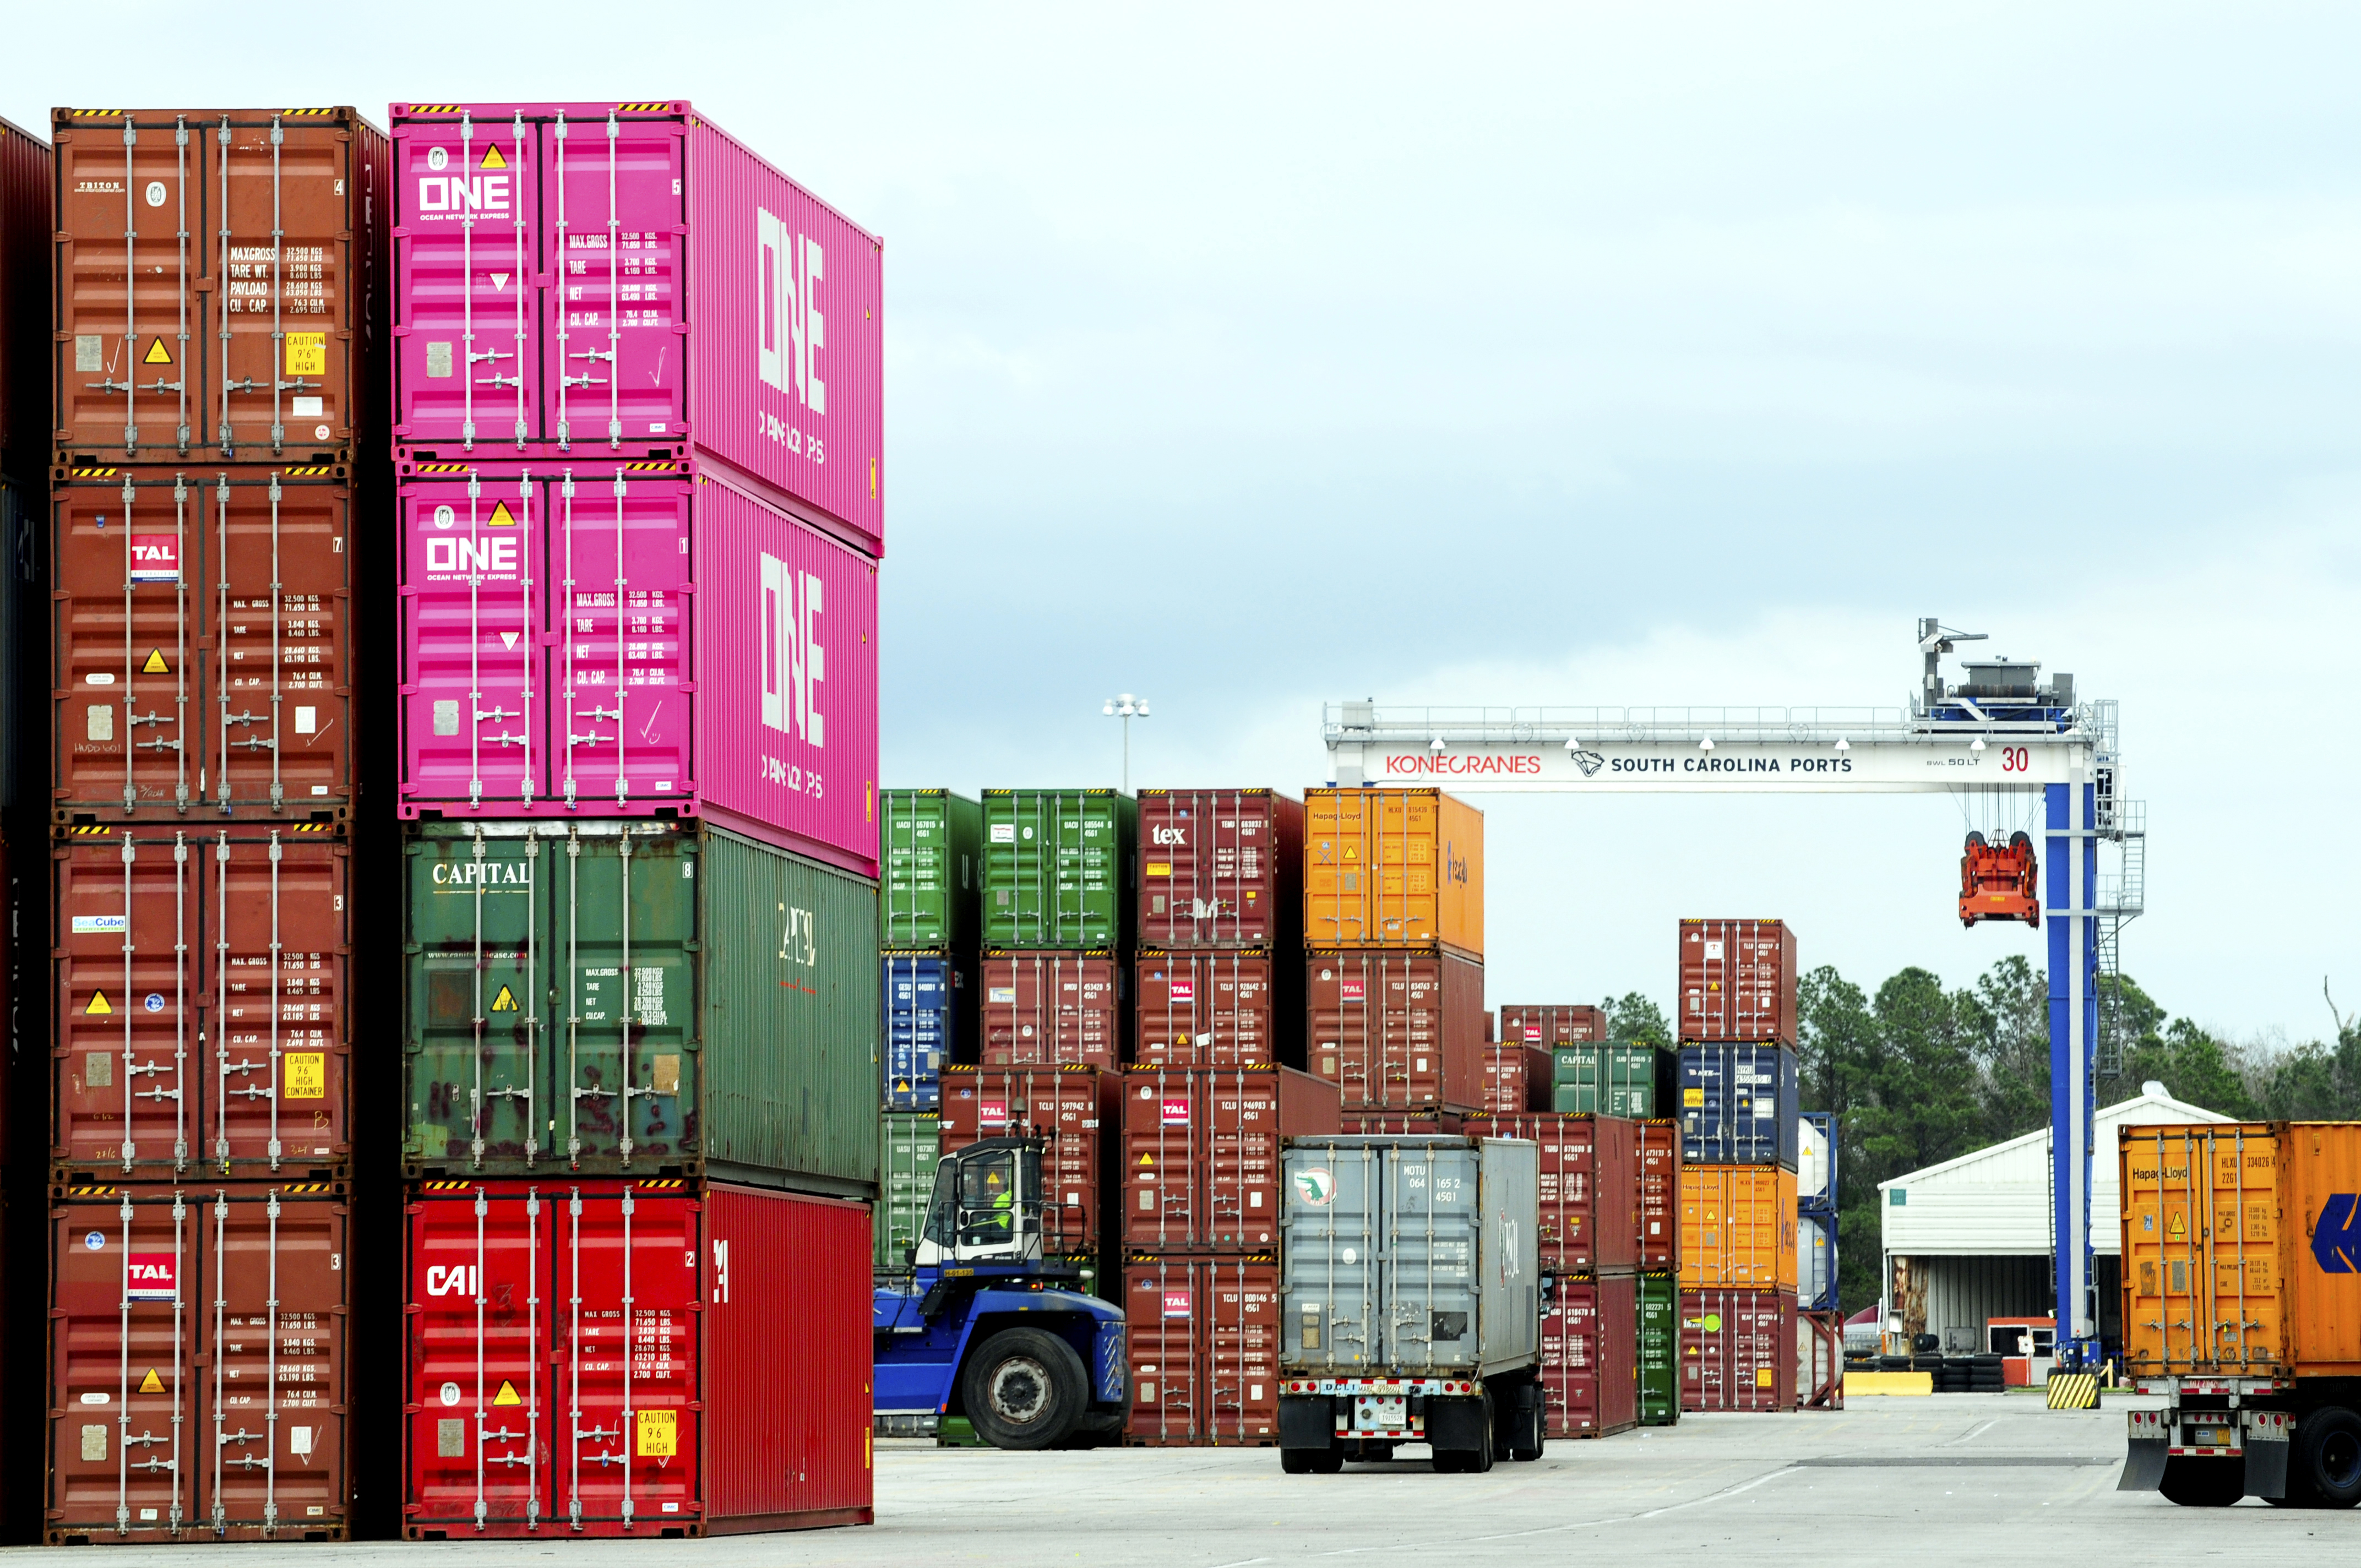 A photograph of containers stacked at a yard.